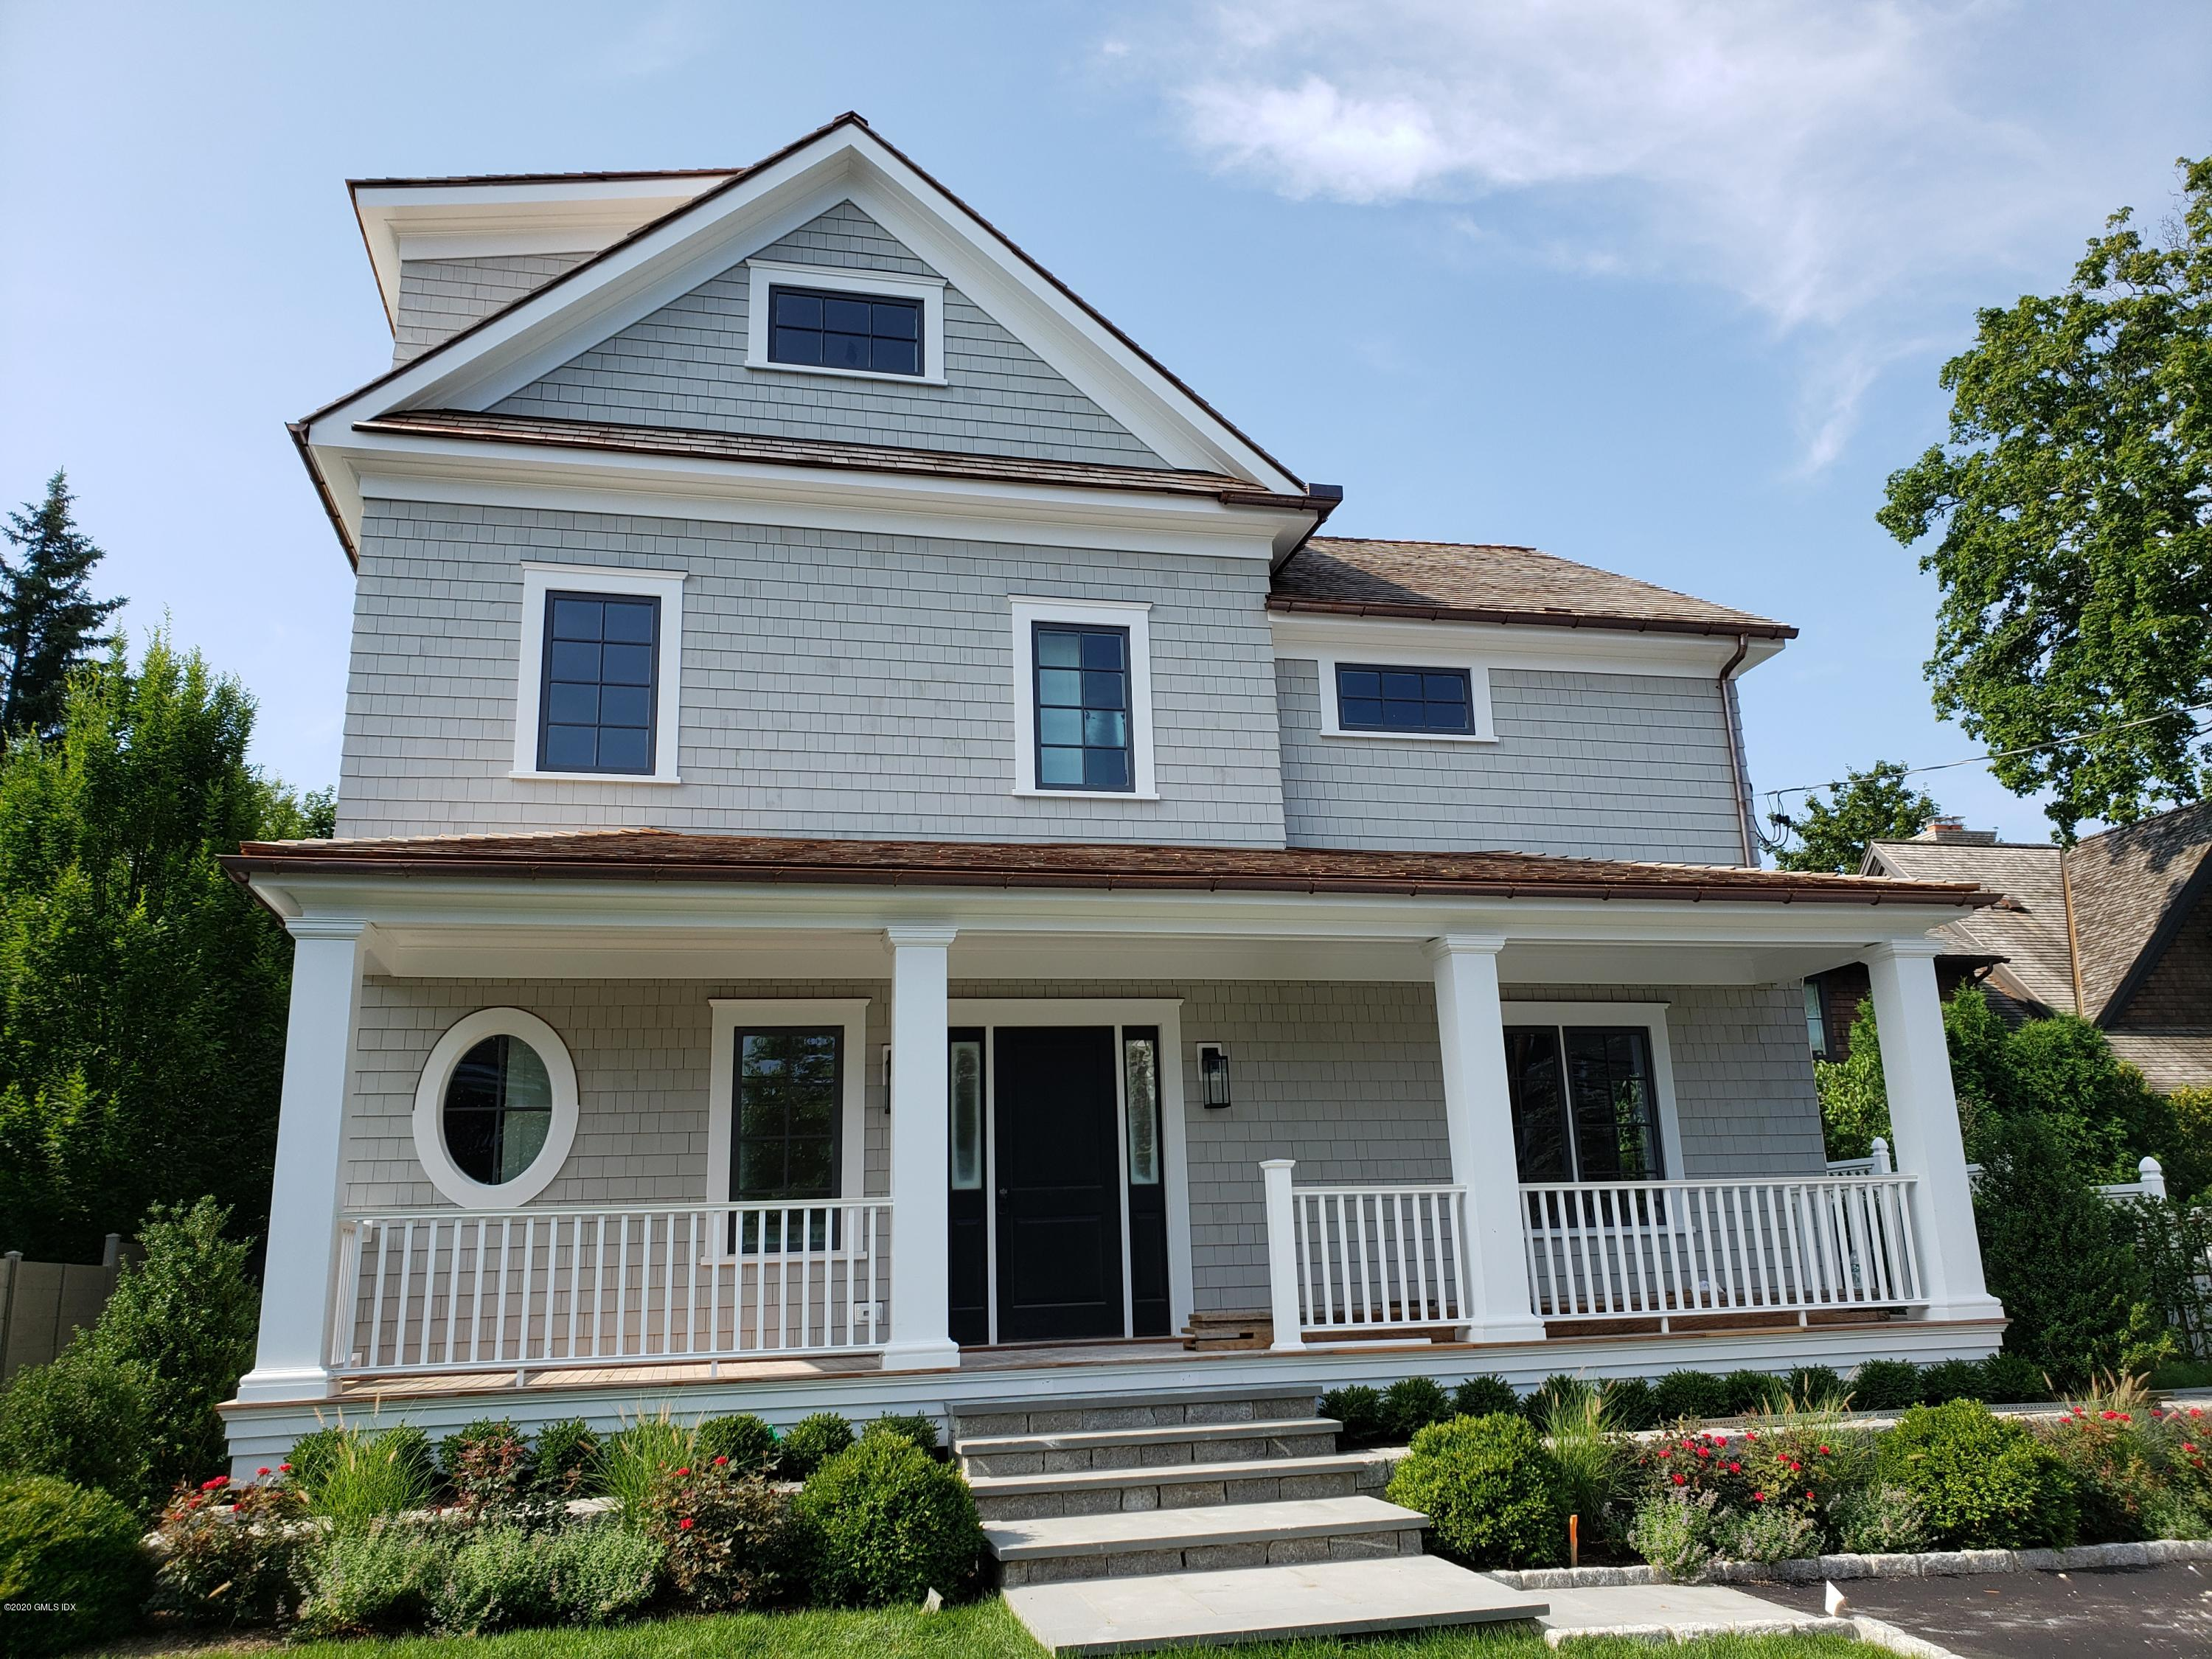 103 Connecticut Avenue, Greenwich, Connecticut 06830, 4 Bedrooms Bedrooms, ,4 BathroomsBathrooms,Single family,For Rent,Connecticut,112257